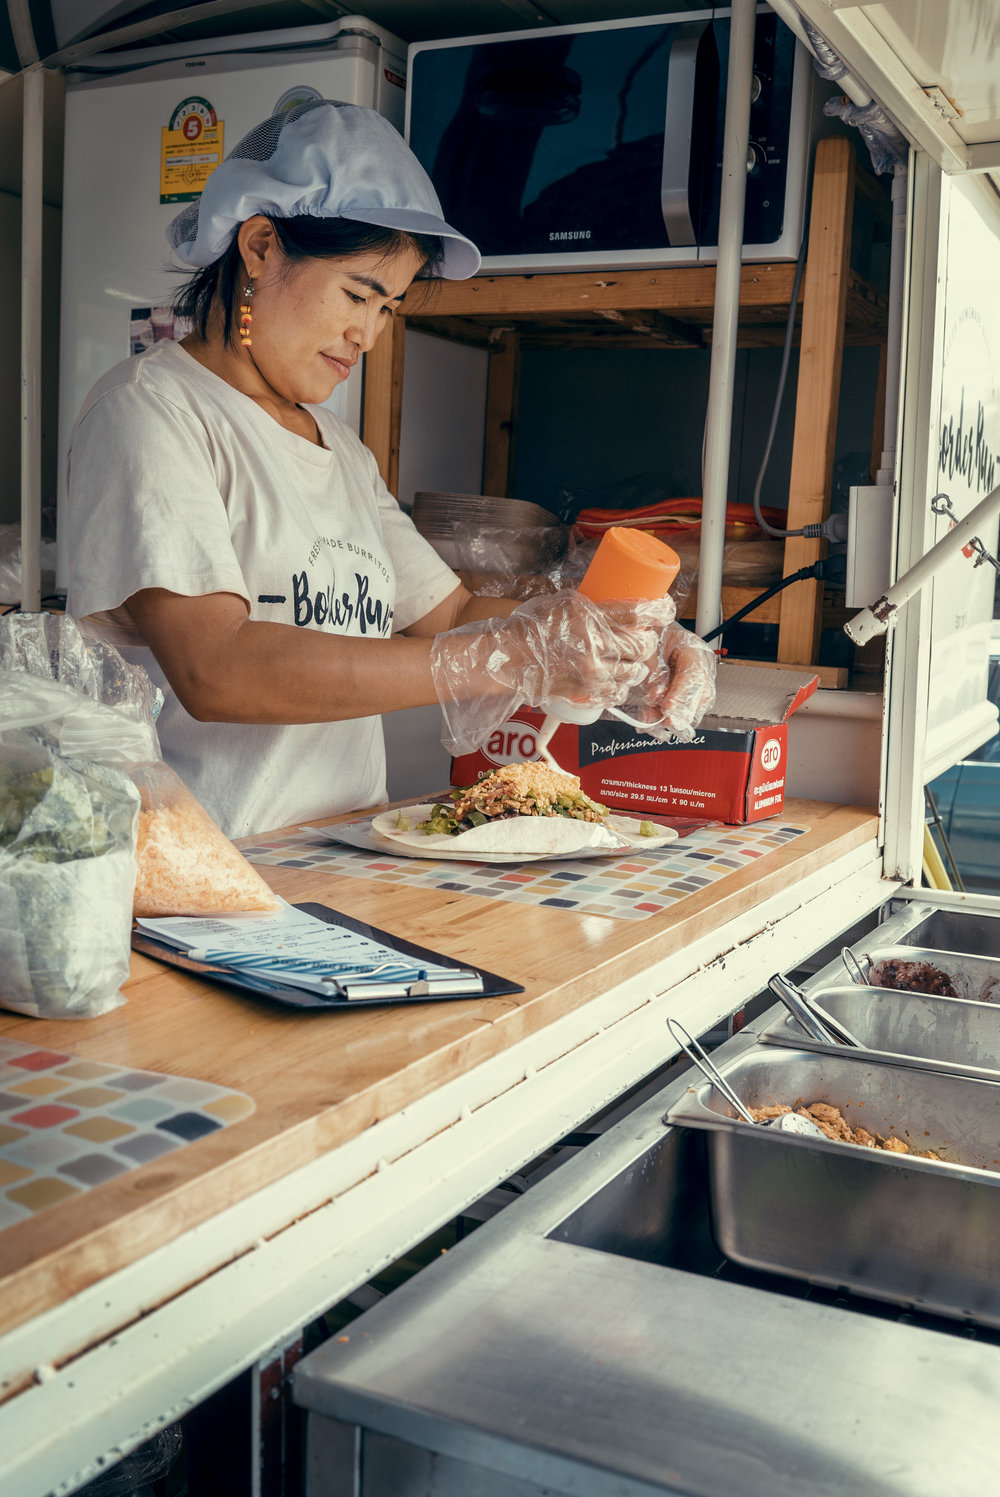 Pawn learned how to make North American food from Laurie, her first American employer and Lauren, who helped her set up Border Run - photo by Chad Loftis.